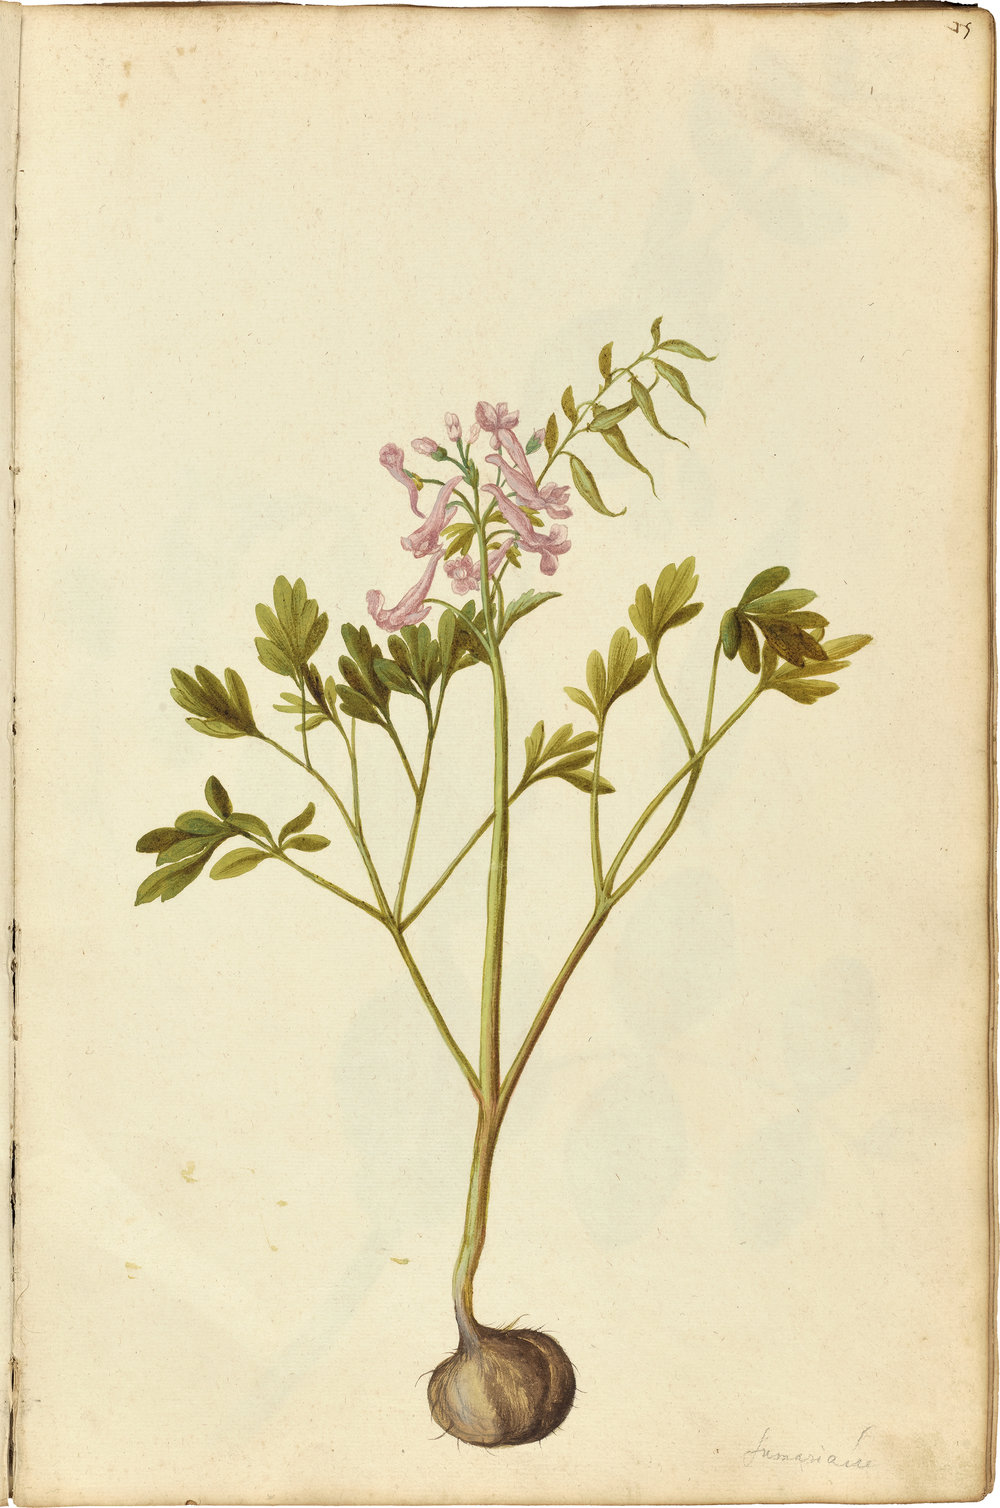 Illustration of Pink Corydalis by Jacques Le Moyne de Morgues, housed in the Oak Spring Garden Library